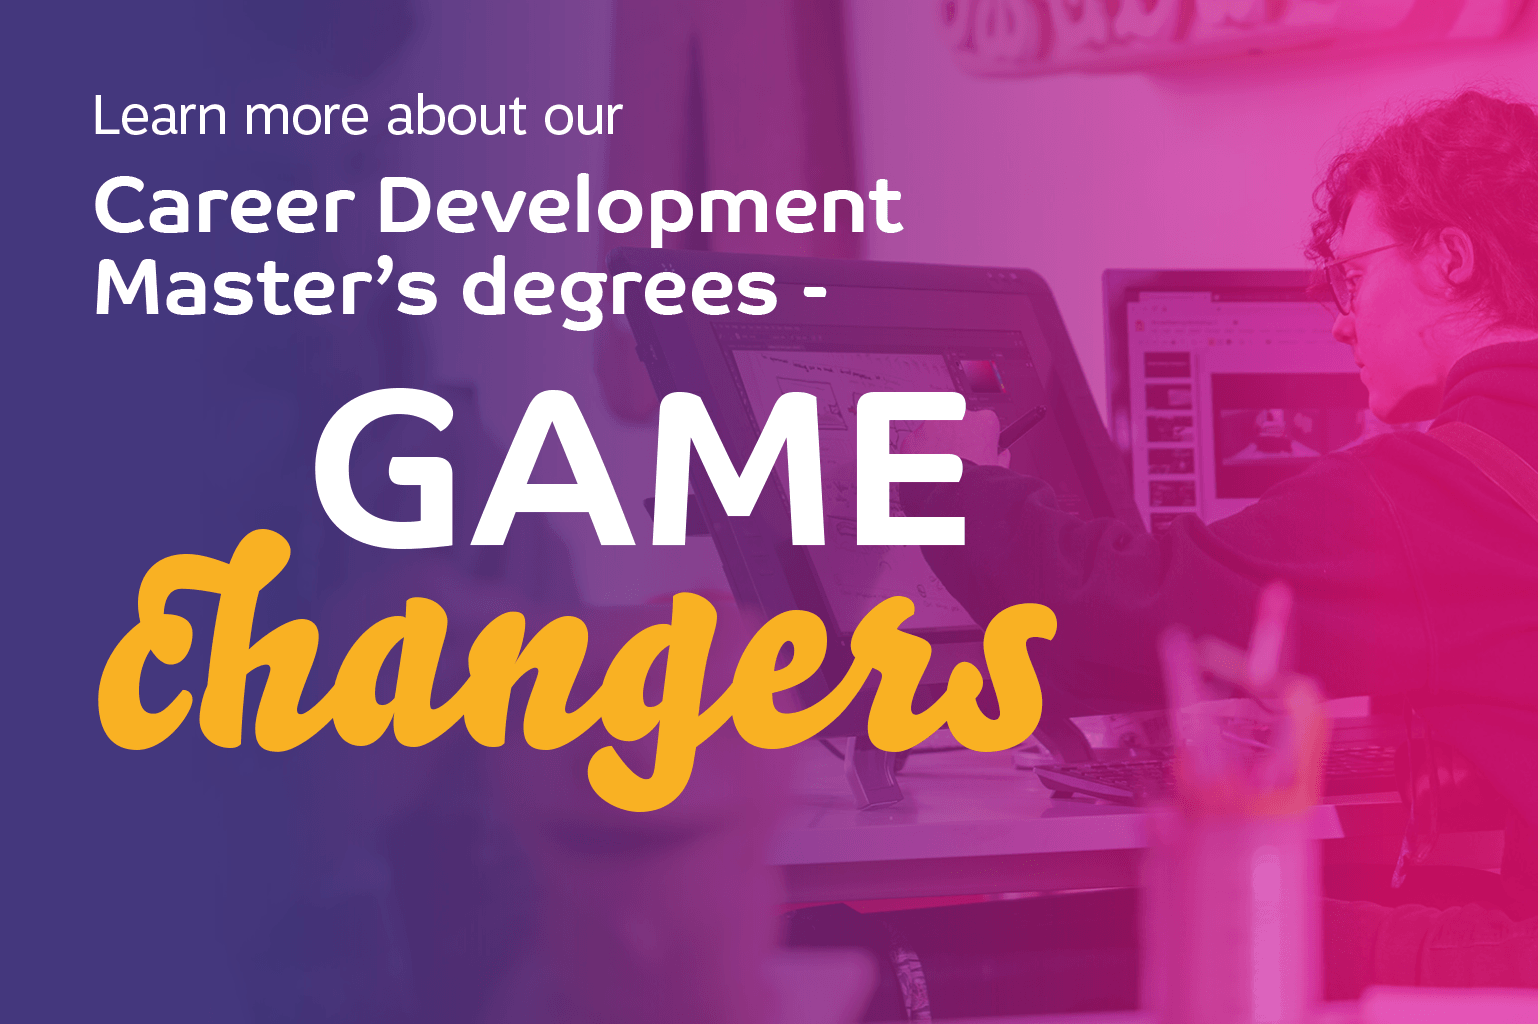 Career Development Master's Degree - Game Changers